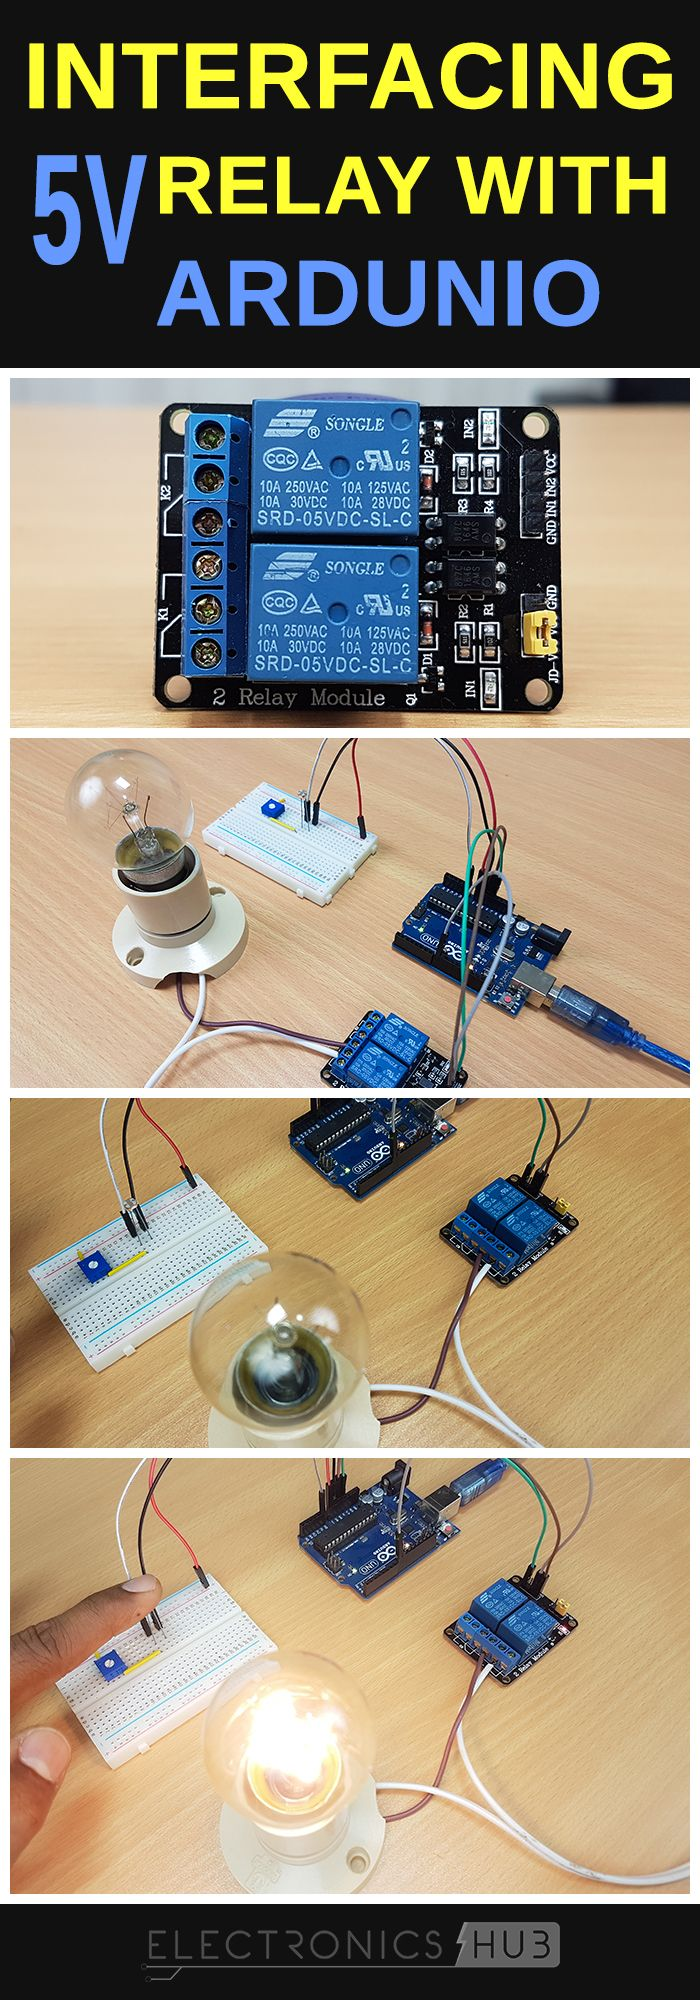 How To Use 5v Relay On Arduino Projects And Real World Wire Diagram Control System More